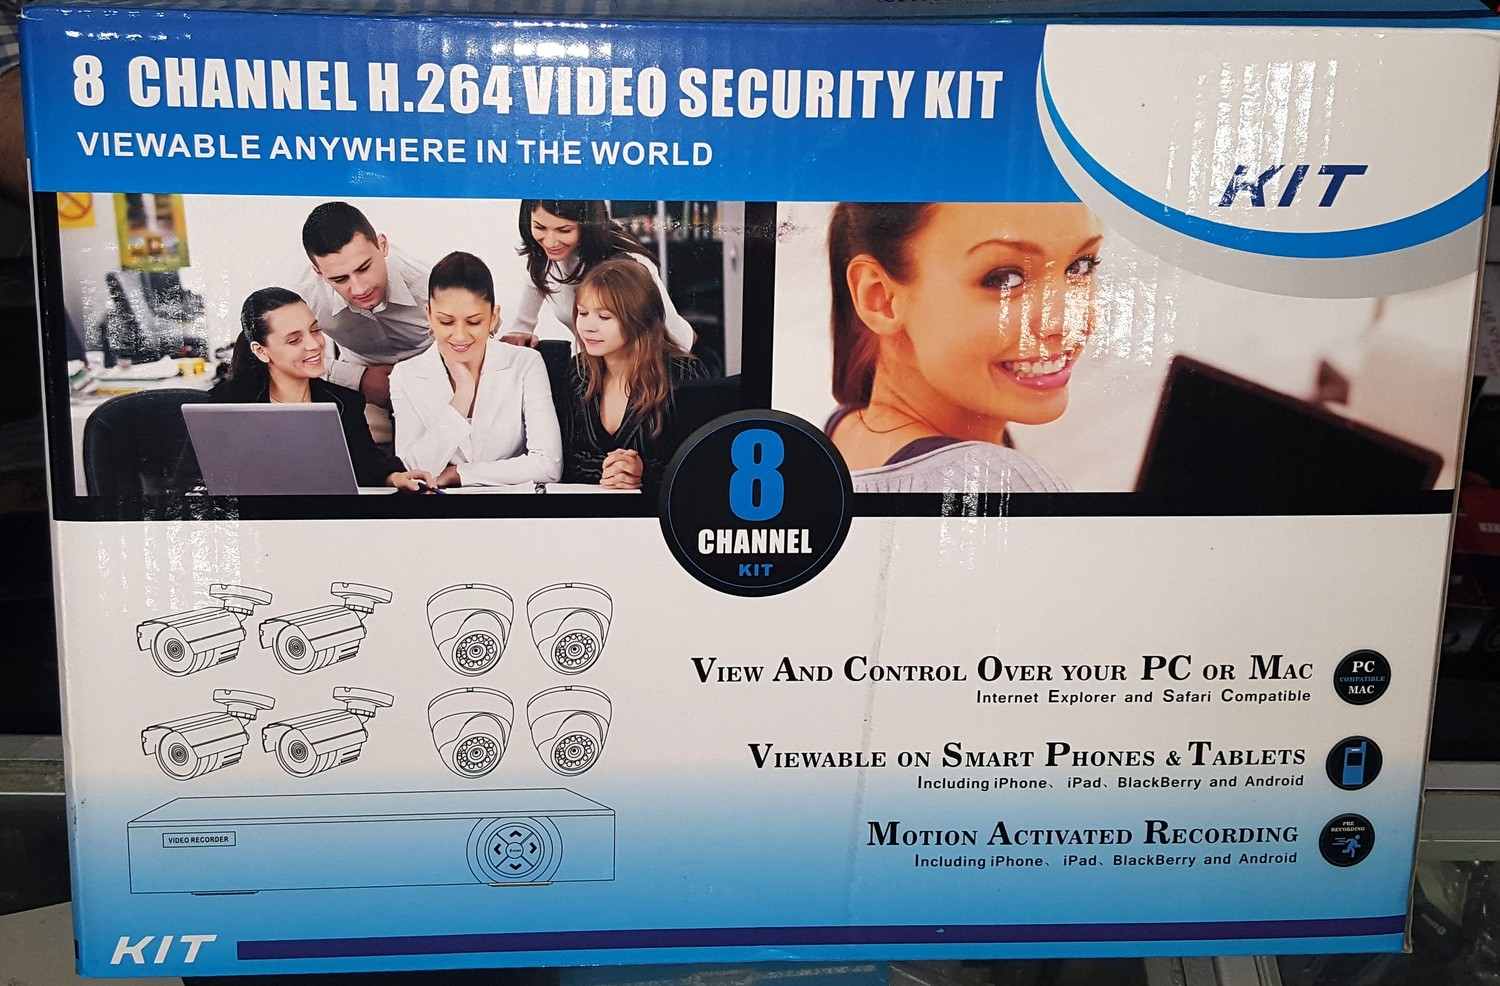 8 Channel Video Security Kit